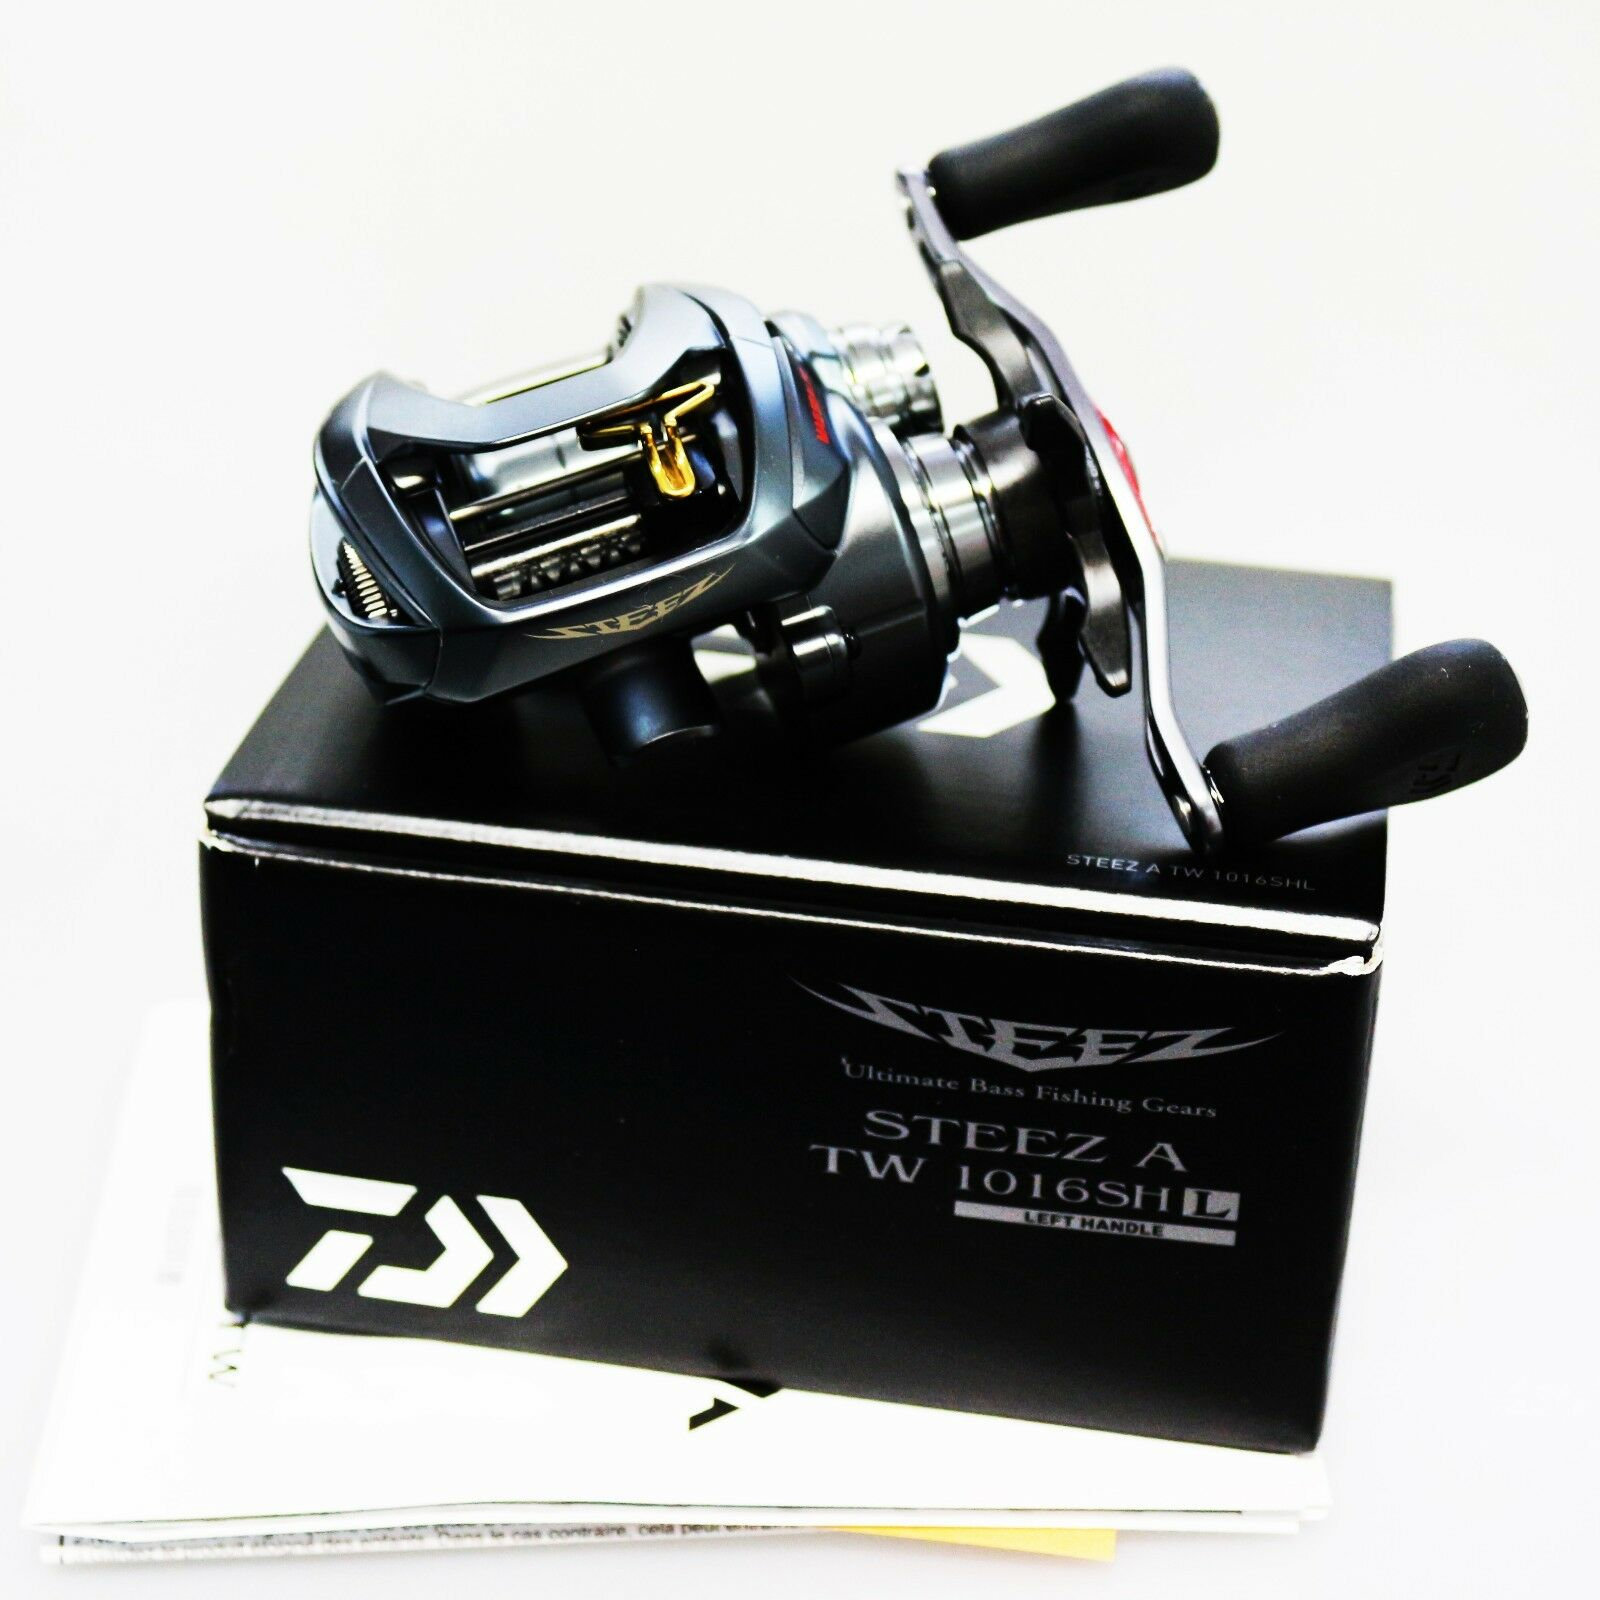 NEW DAIWA STEEZ A TW 1016SHL Left  Baitcasting Reel FedEx Express 2days to US  online cheap